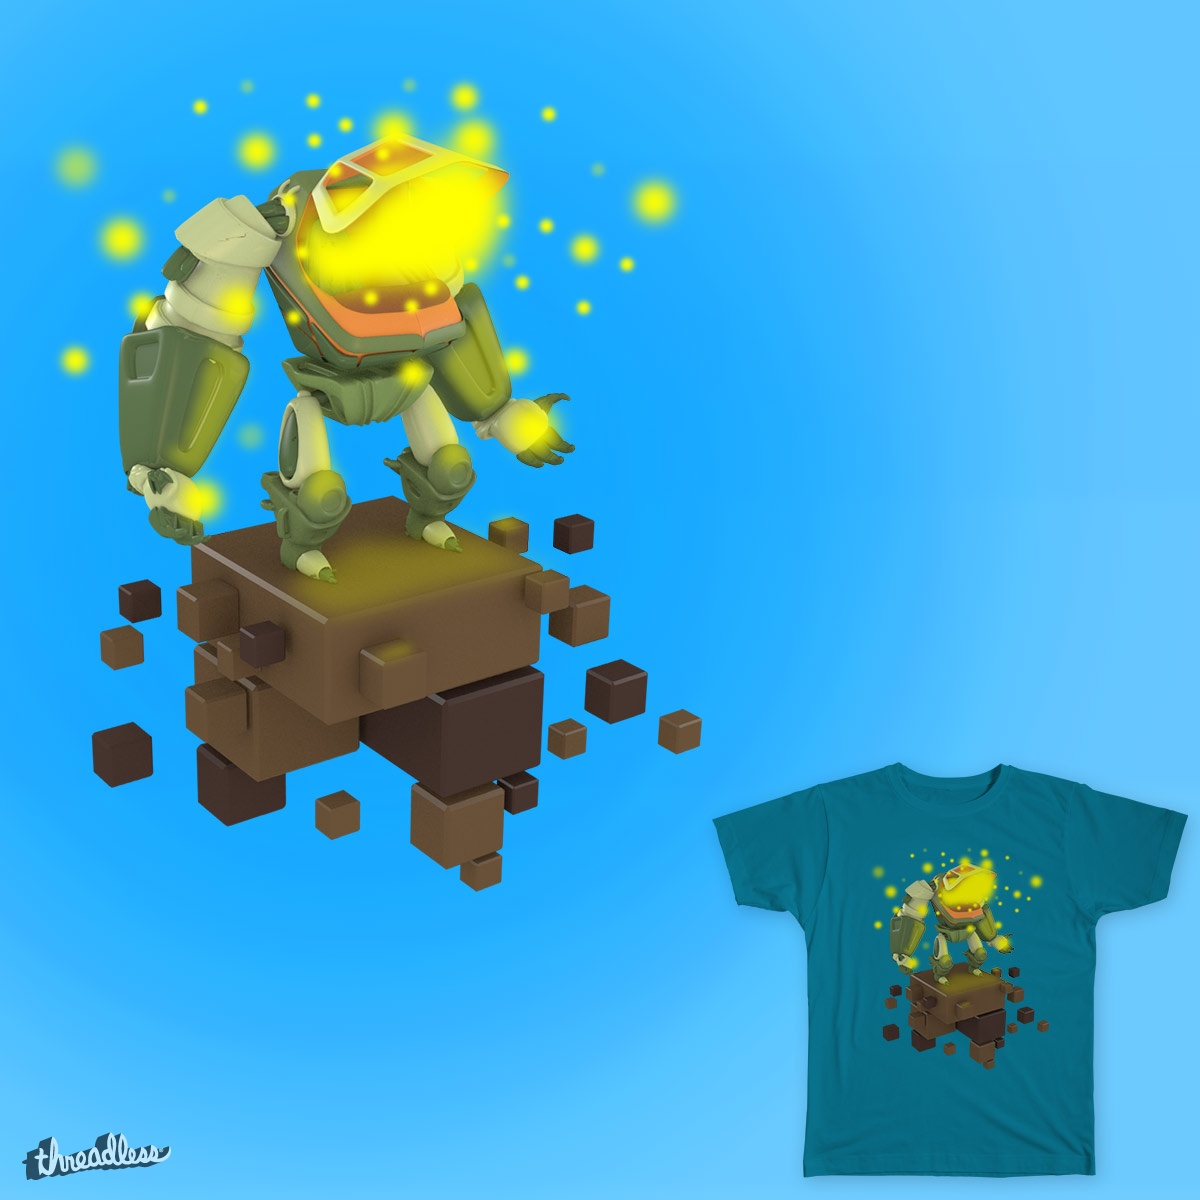 Ascension, a cool t-shirt design